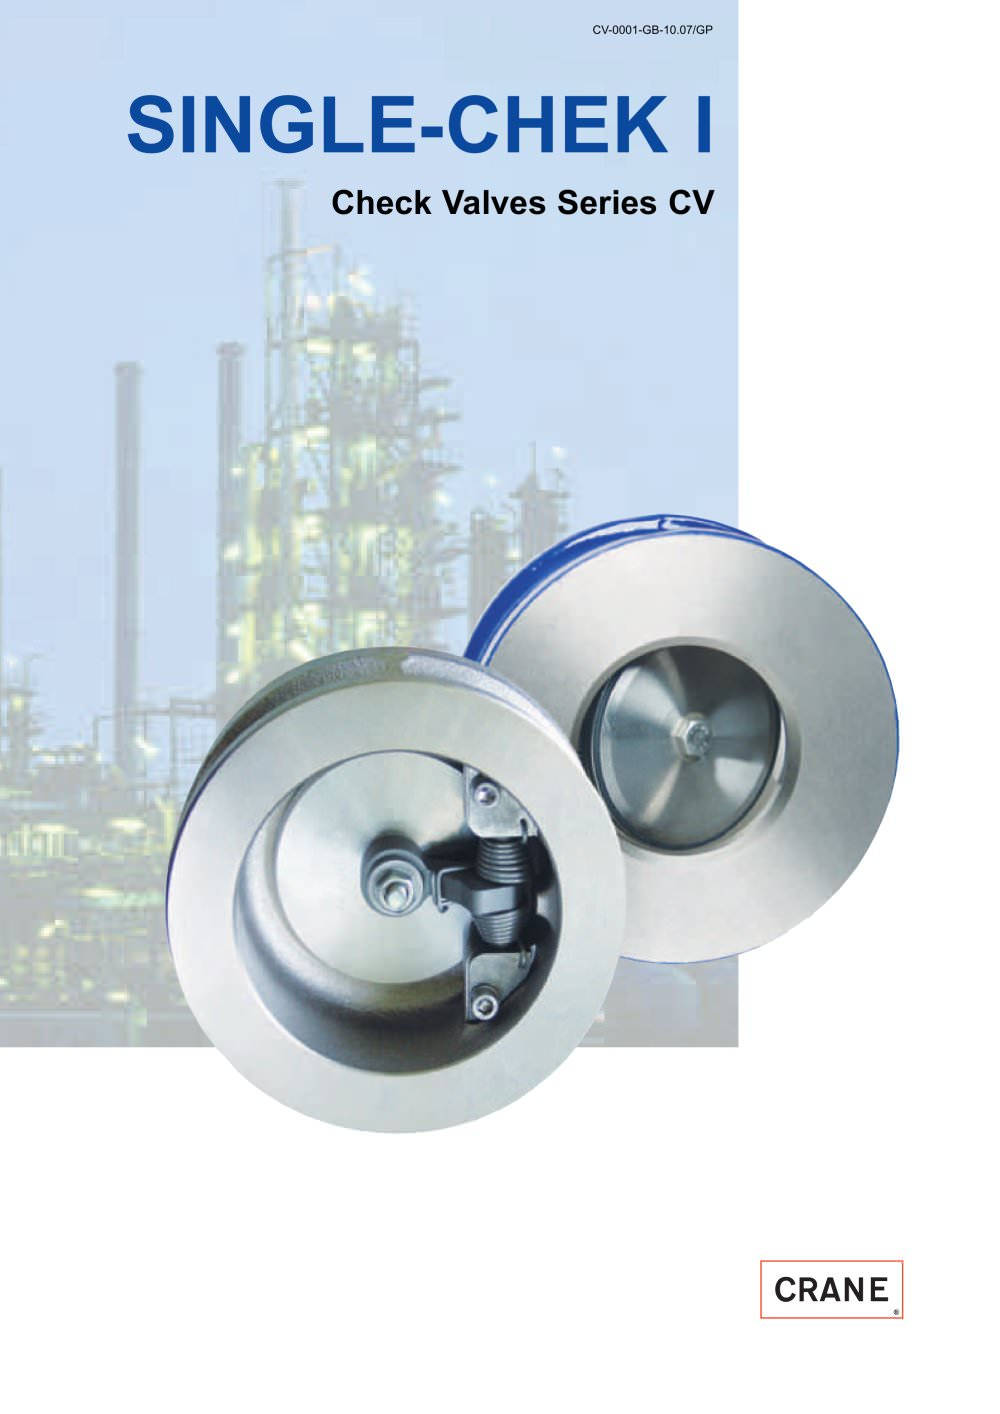 SINGLE-CHEK I Check Ball Valves Series CV - 1 / 8 Pages